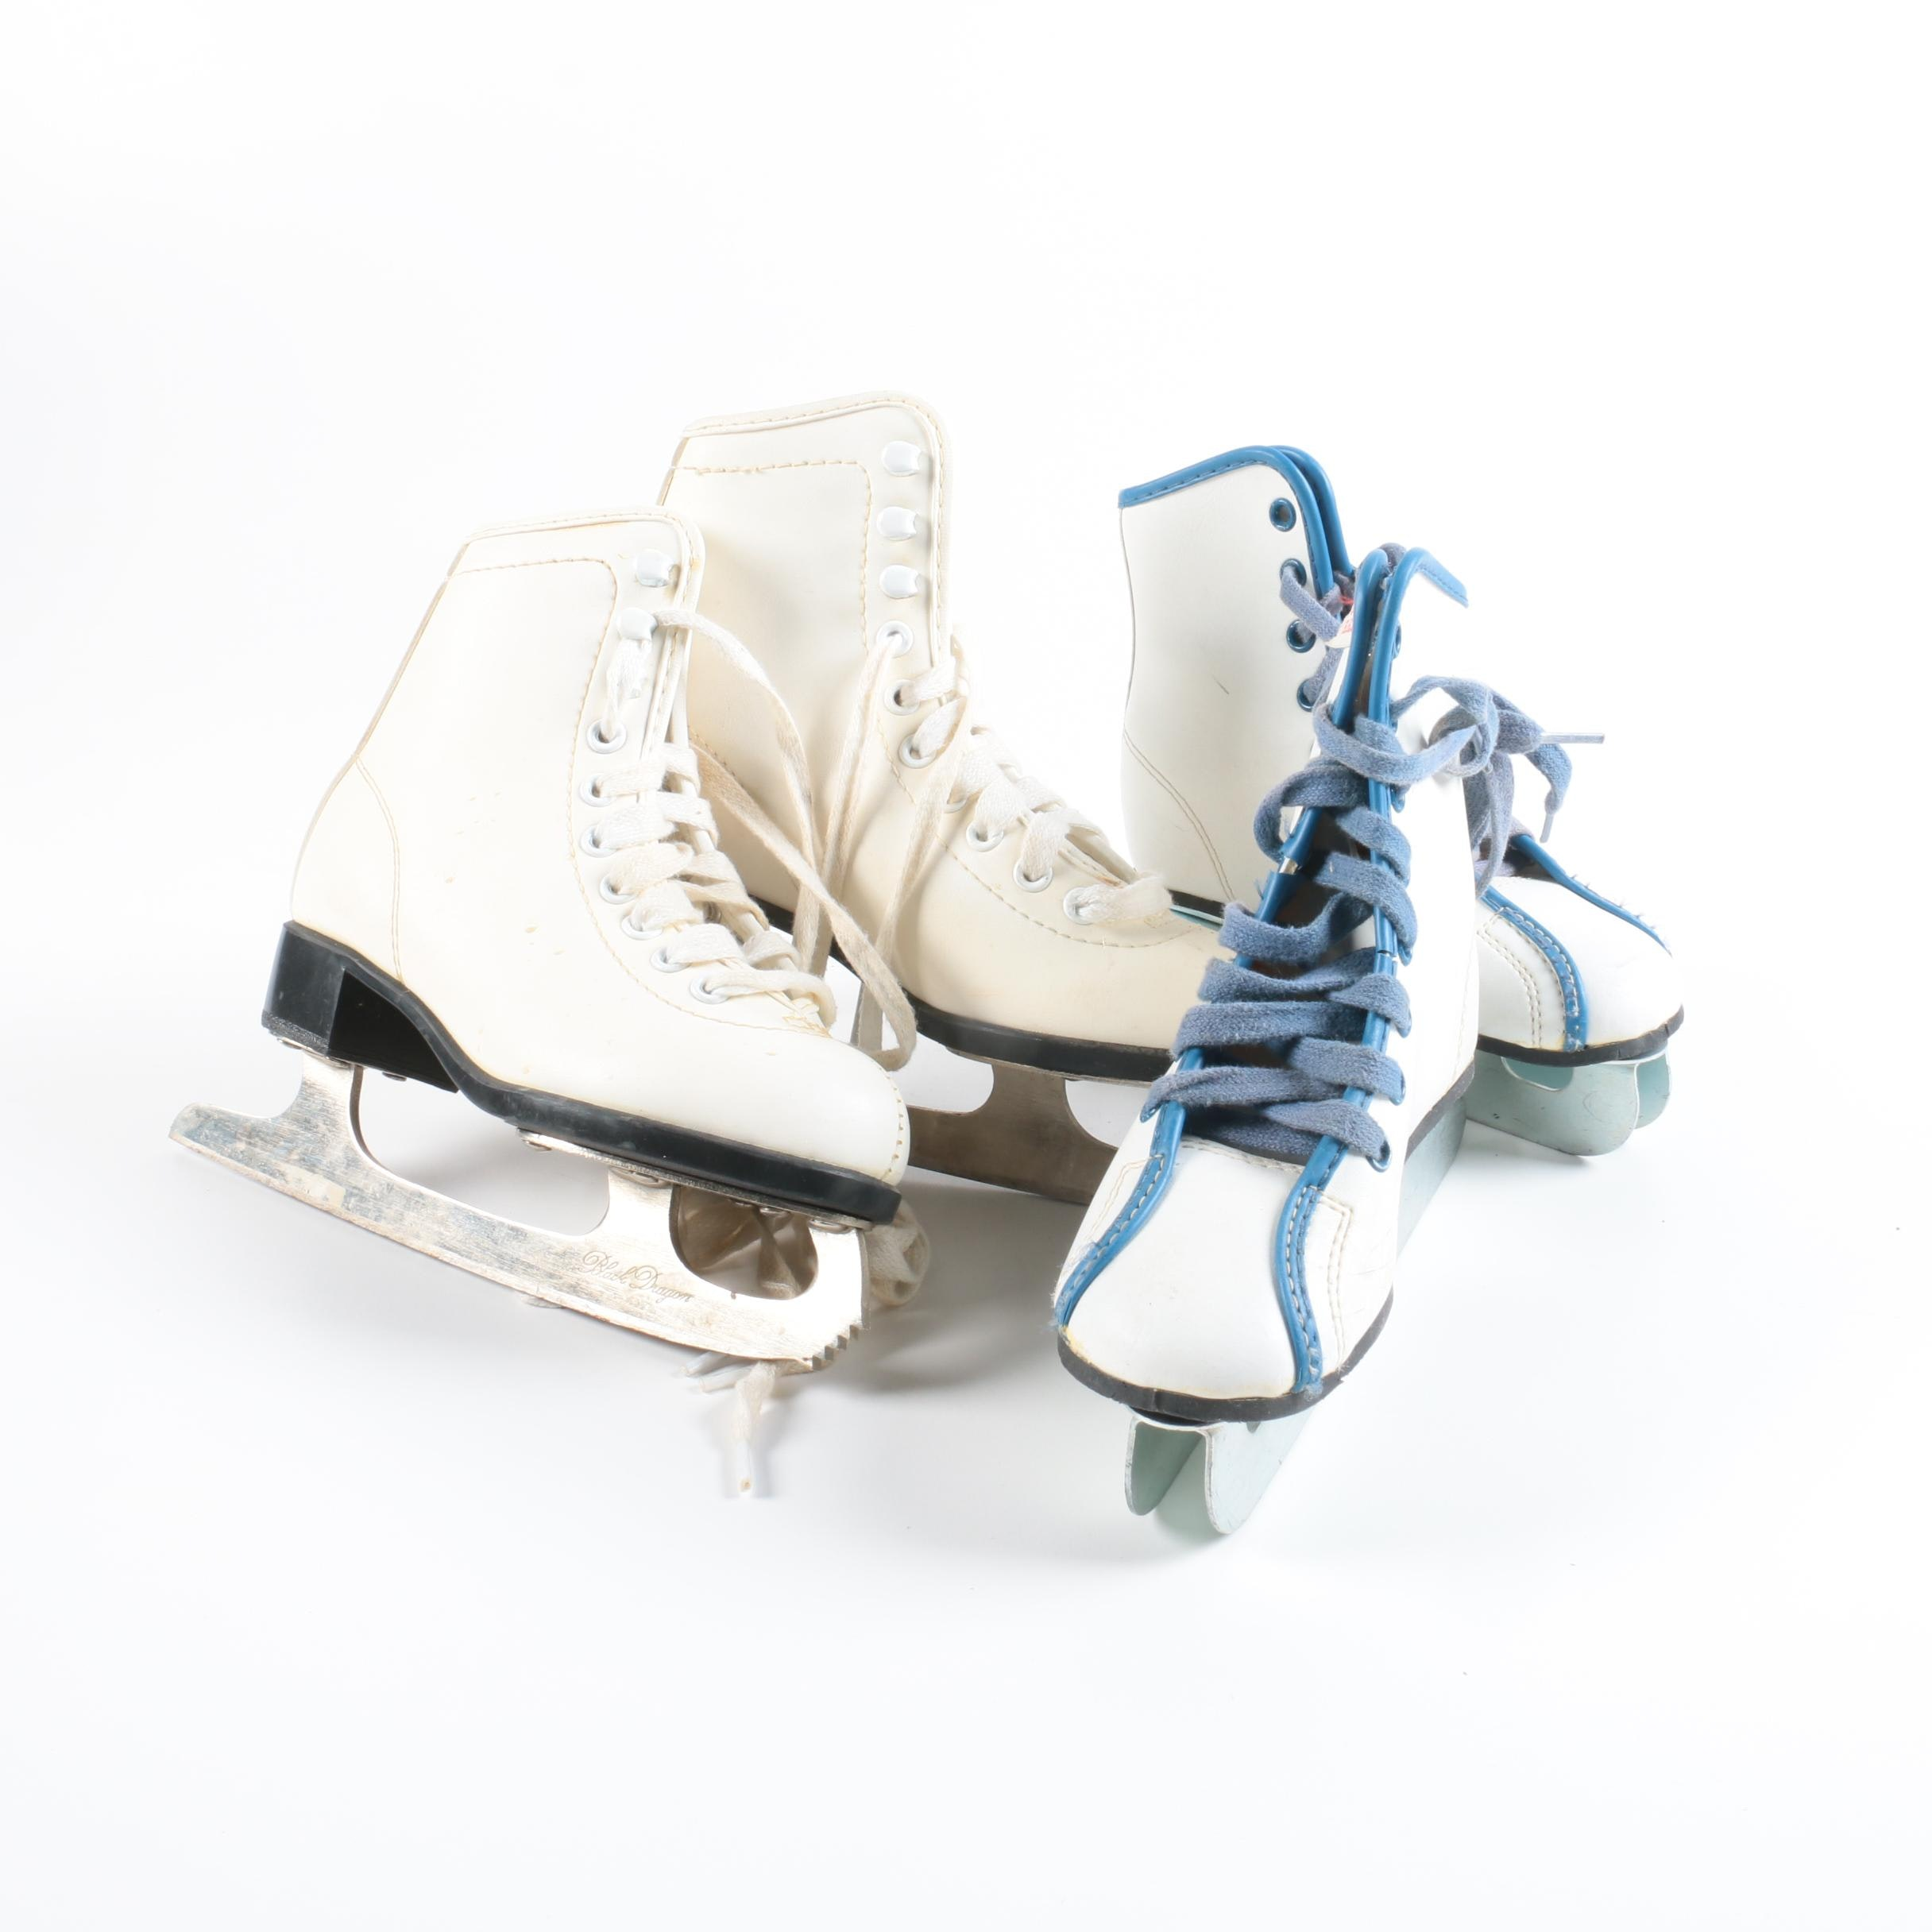 CCM and Lake Placid Ice Skates